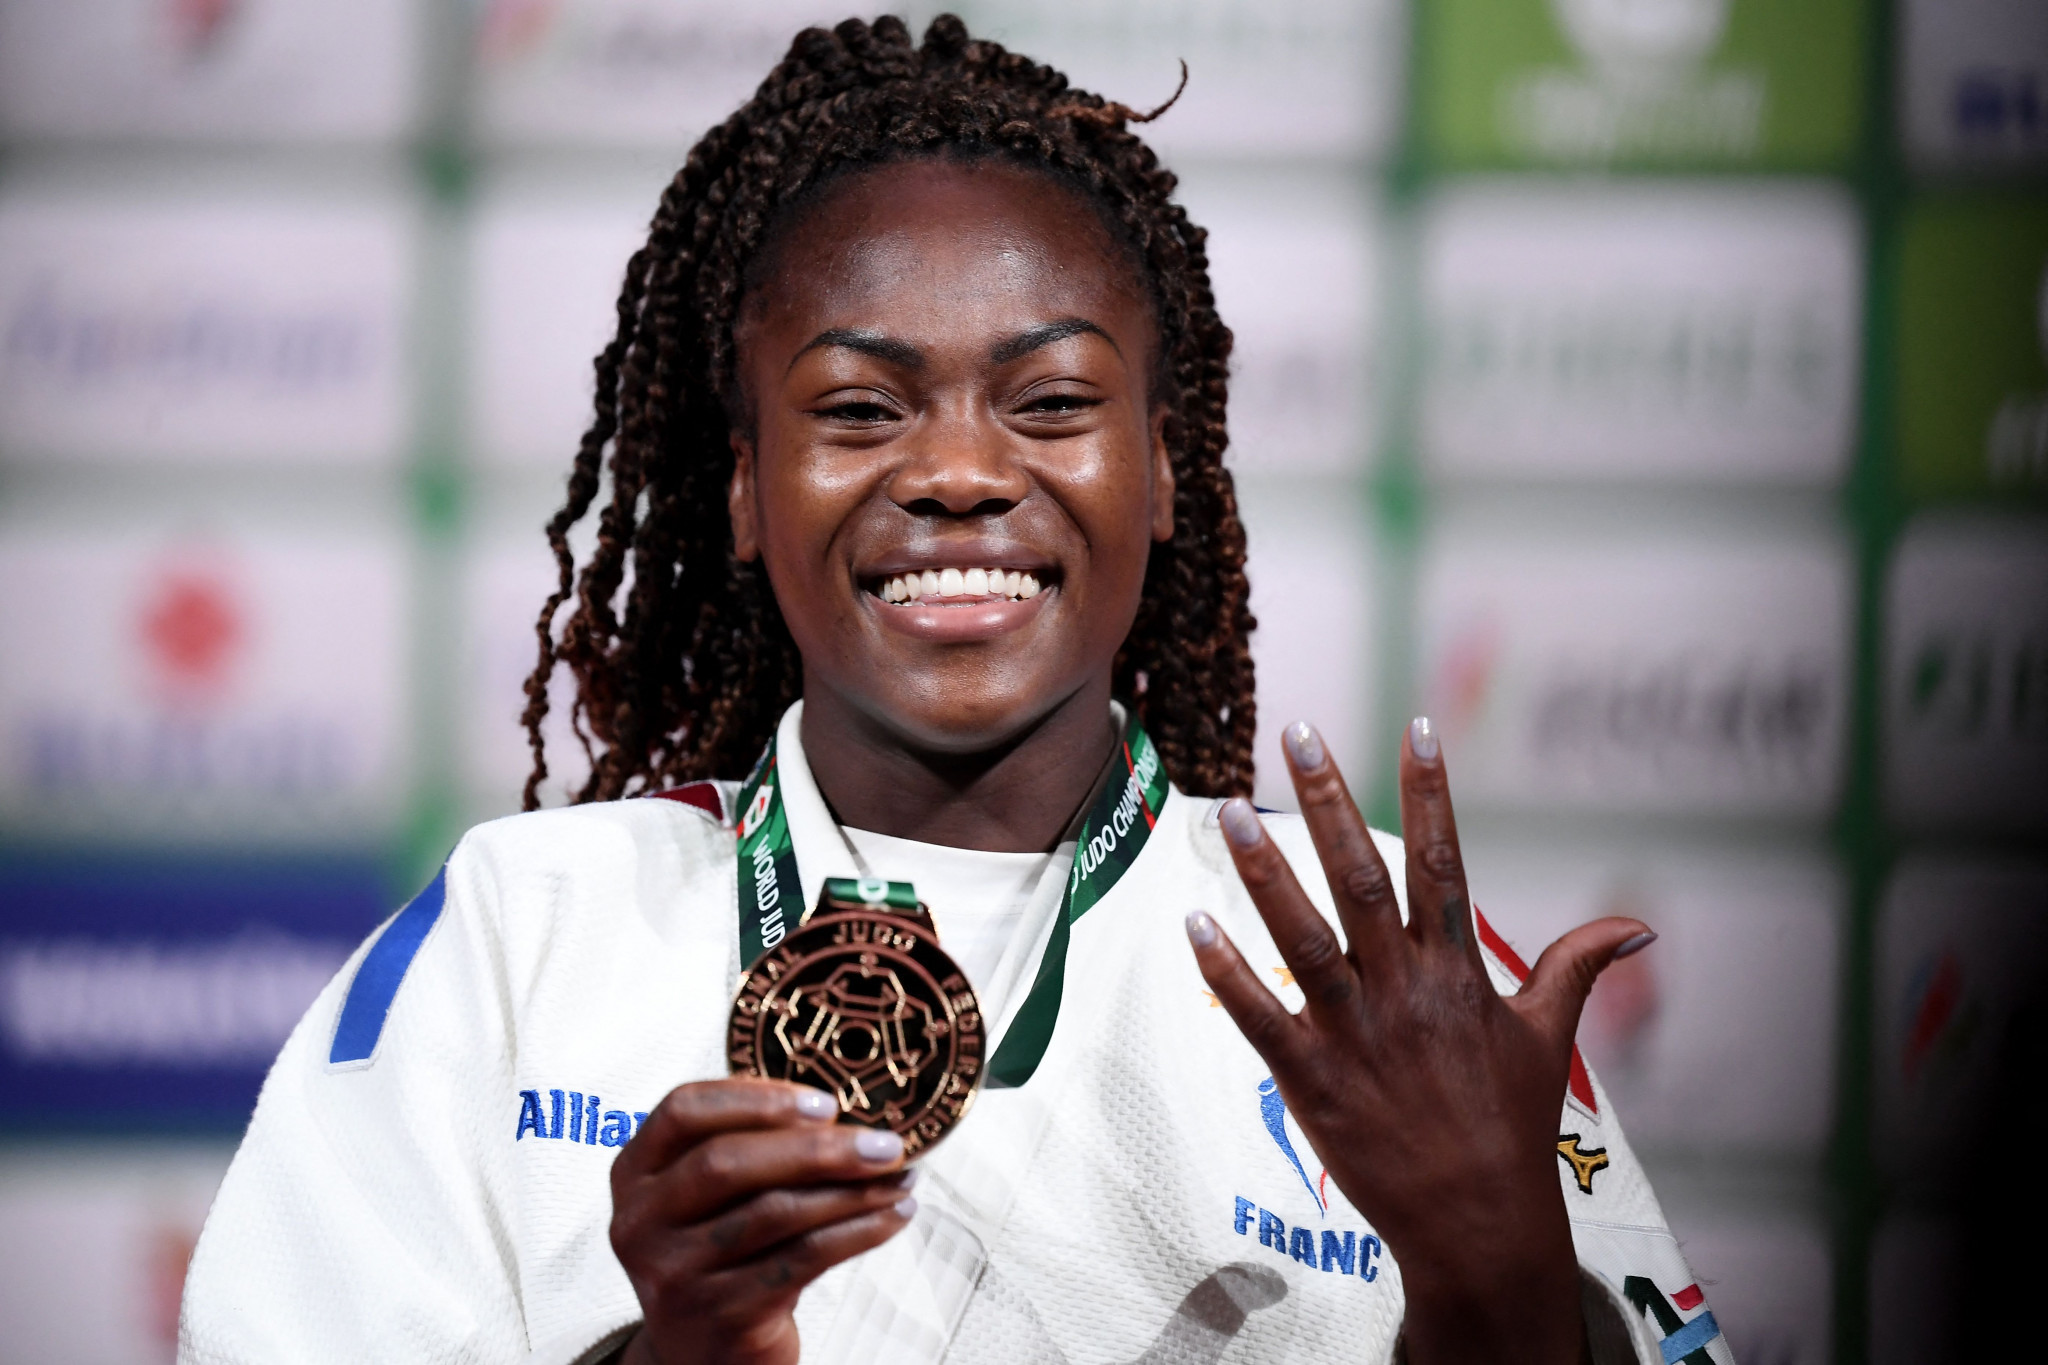 Agbegnenou captures fifth world judo title with dominant display in Budapest